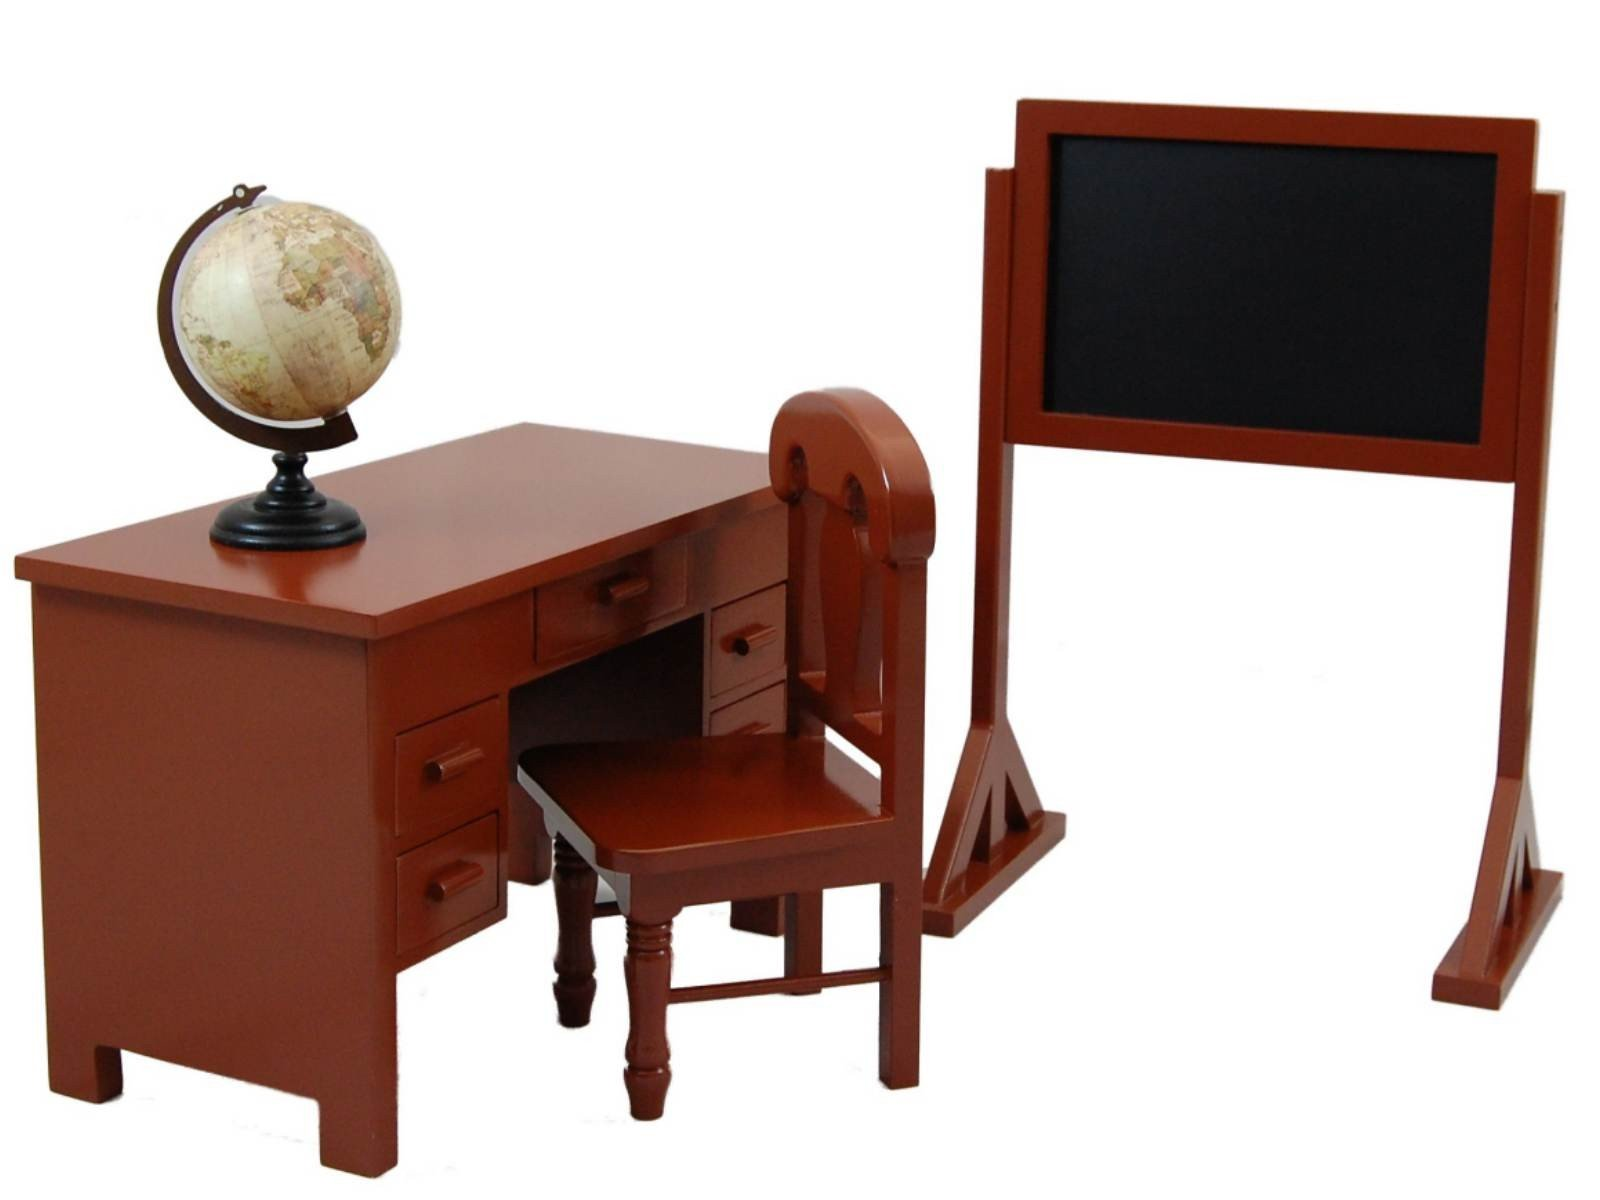 School Teacher Desk And Play Set For 18 Quot American Girl